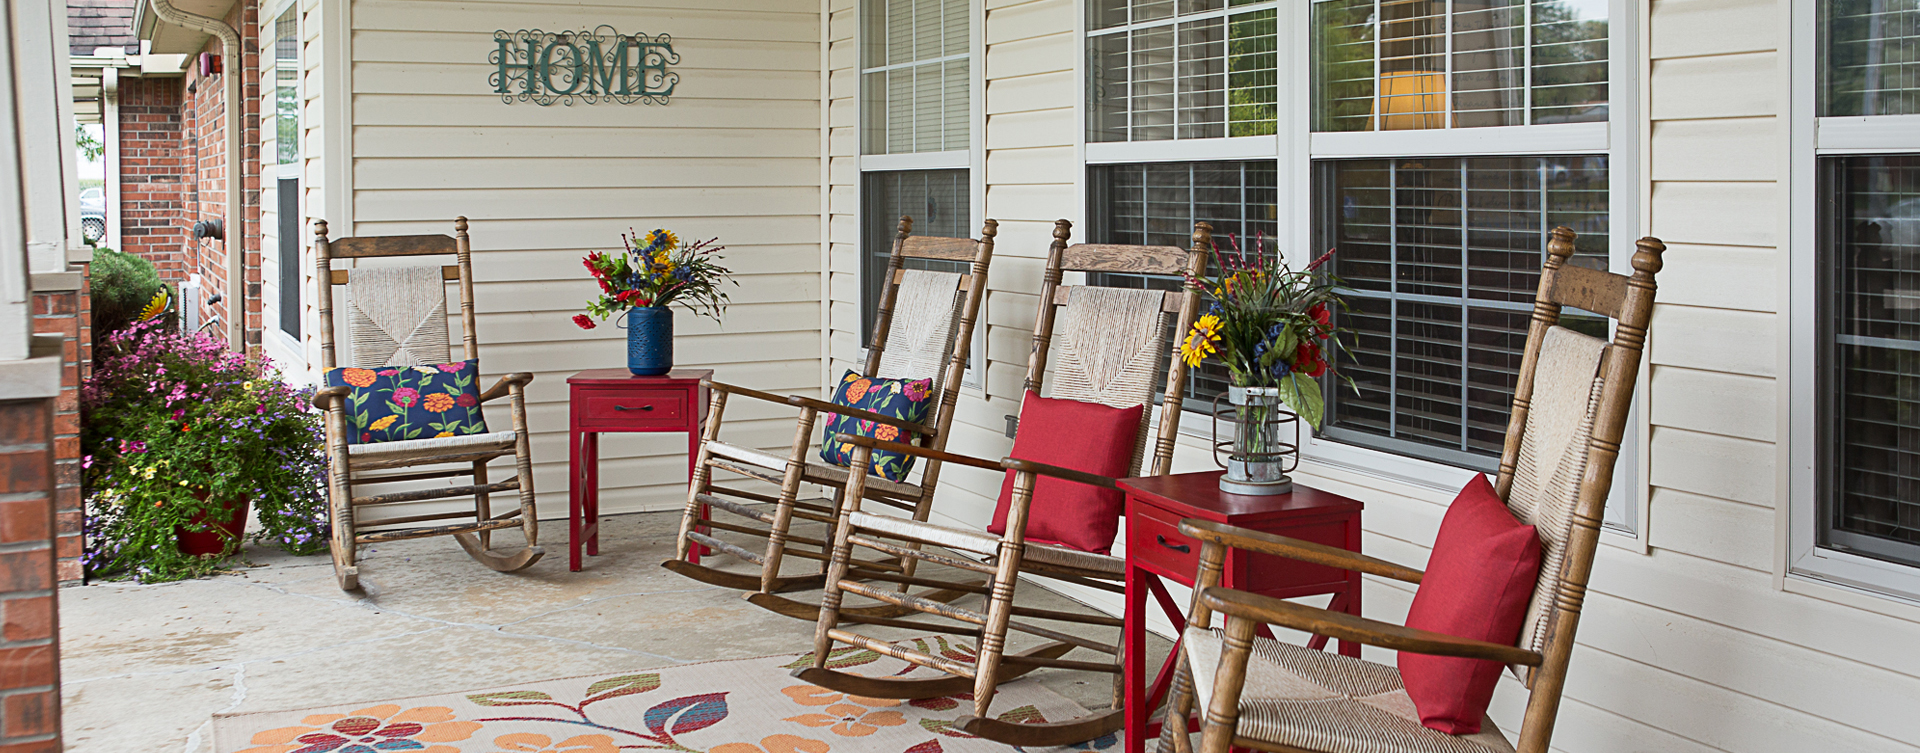 Relax in your favorite chair on the porch at Bickford of Clinton